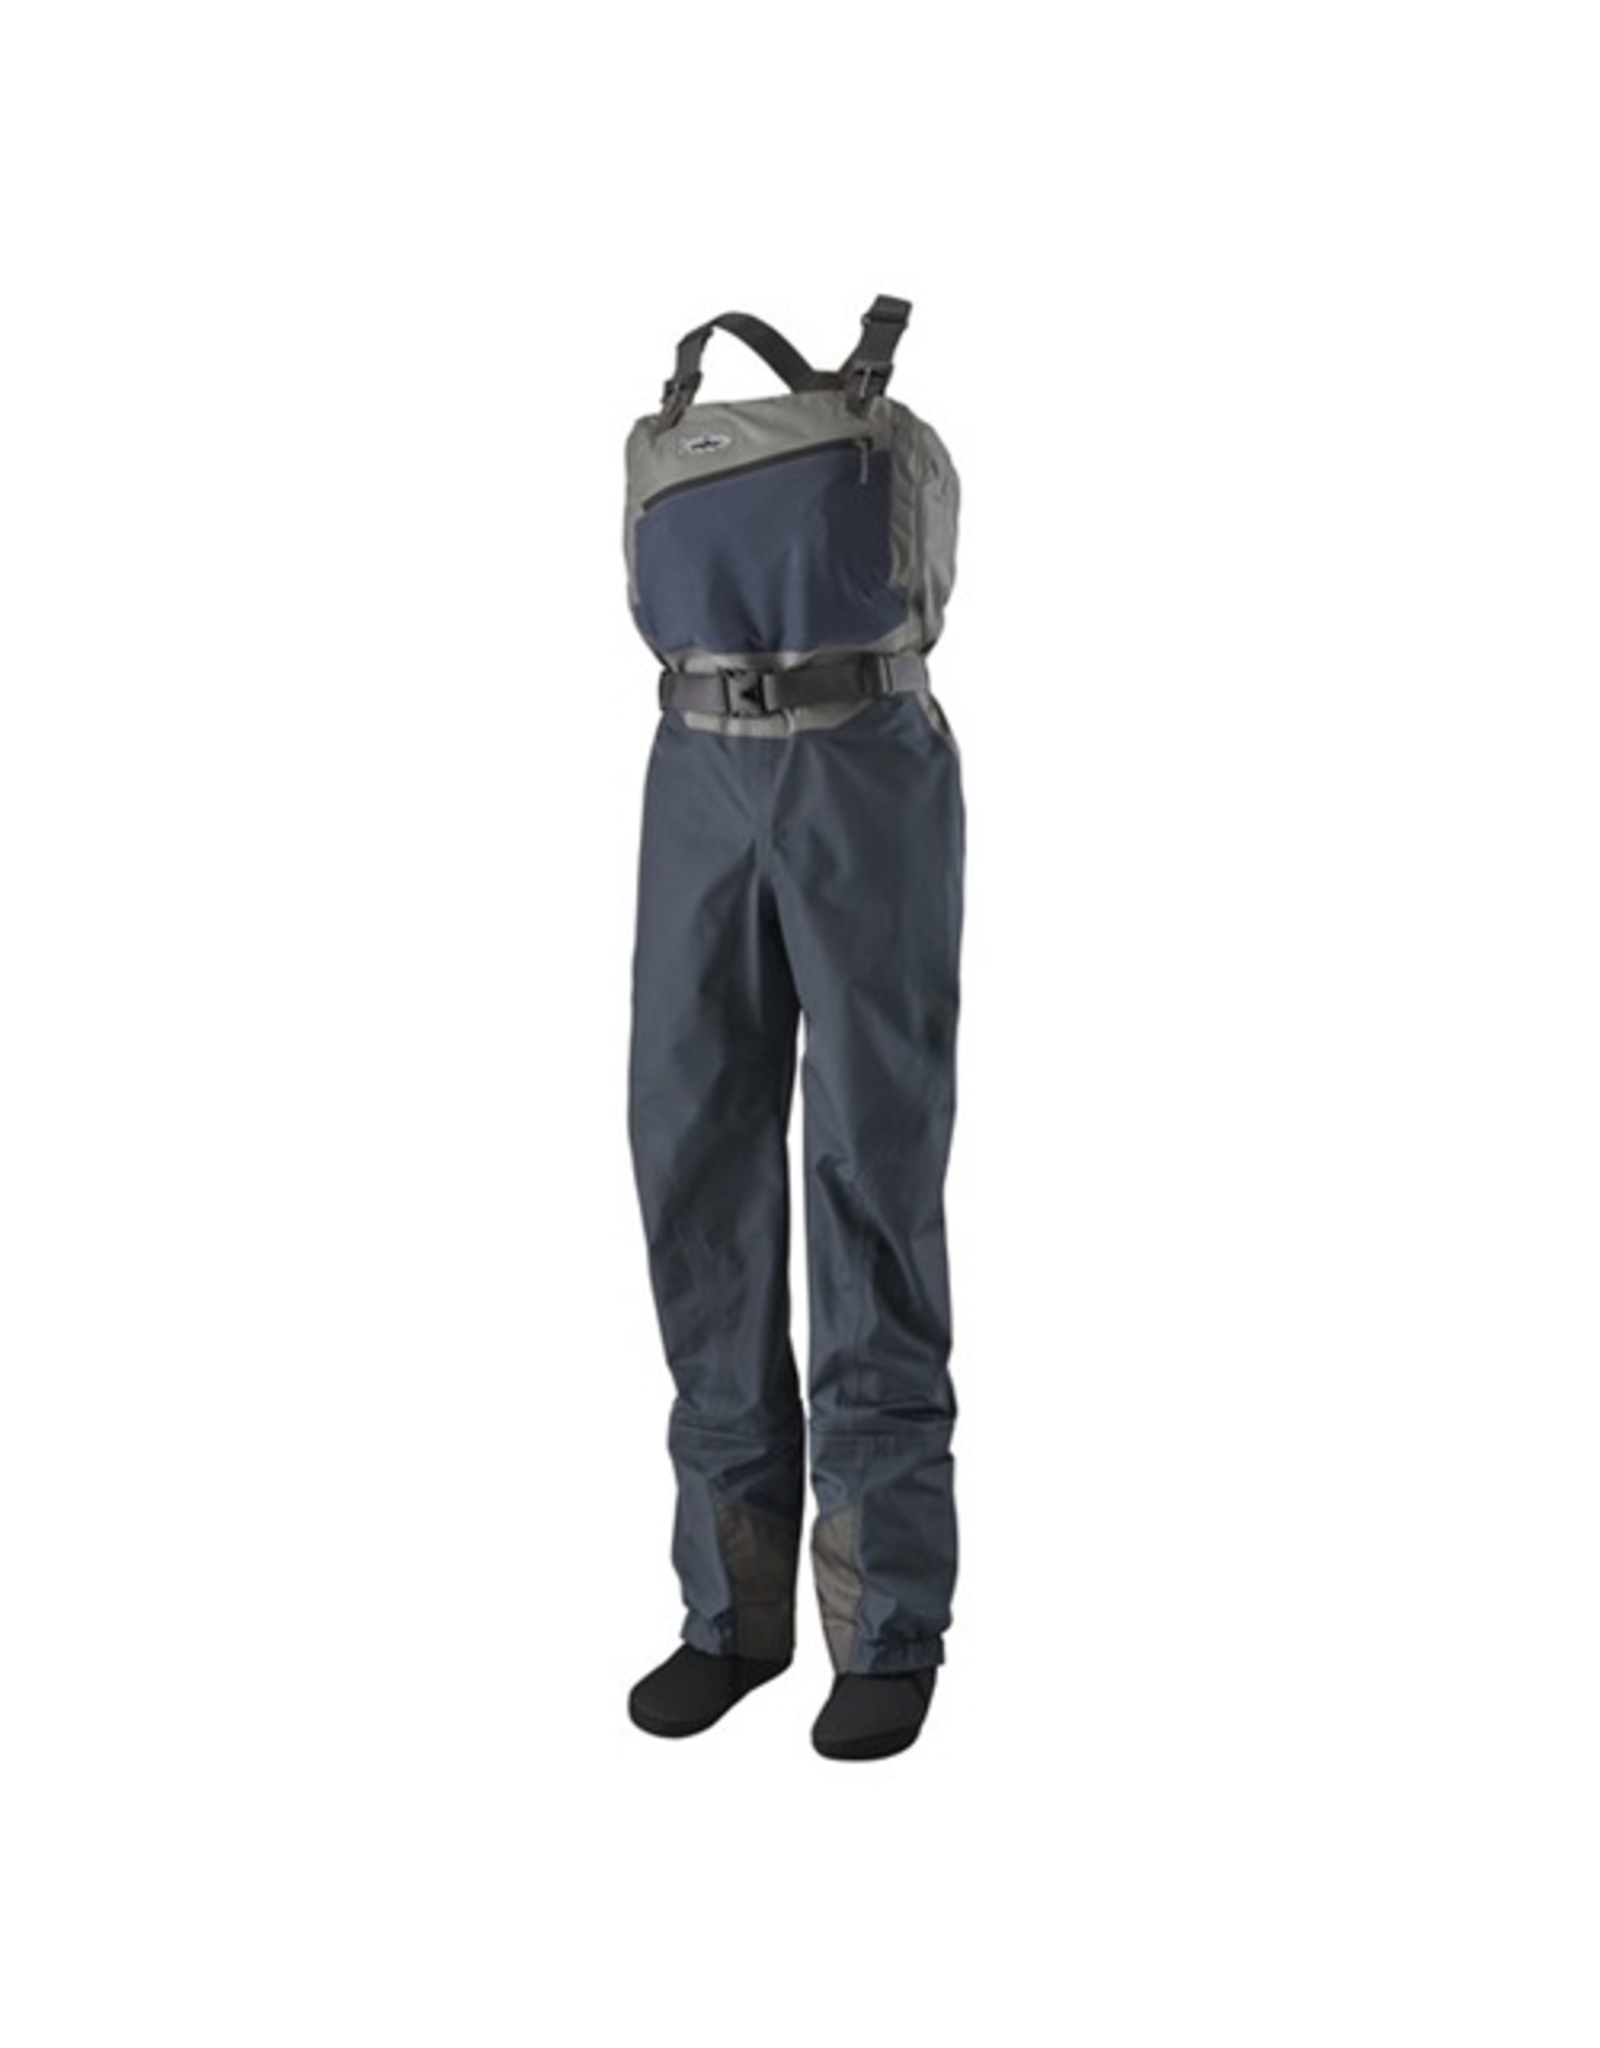 NEW Patagonia Women's Swiftcurrent Waders